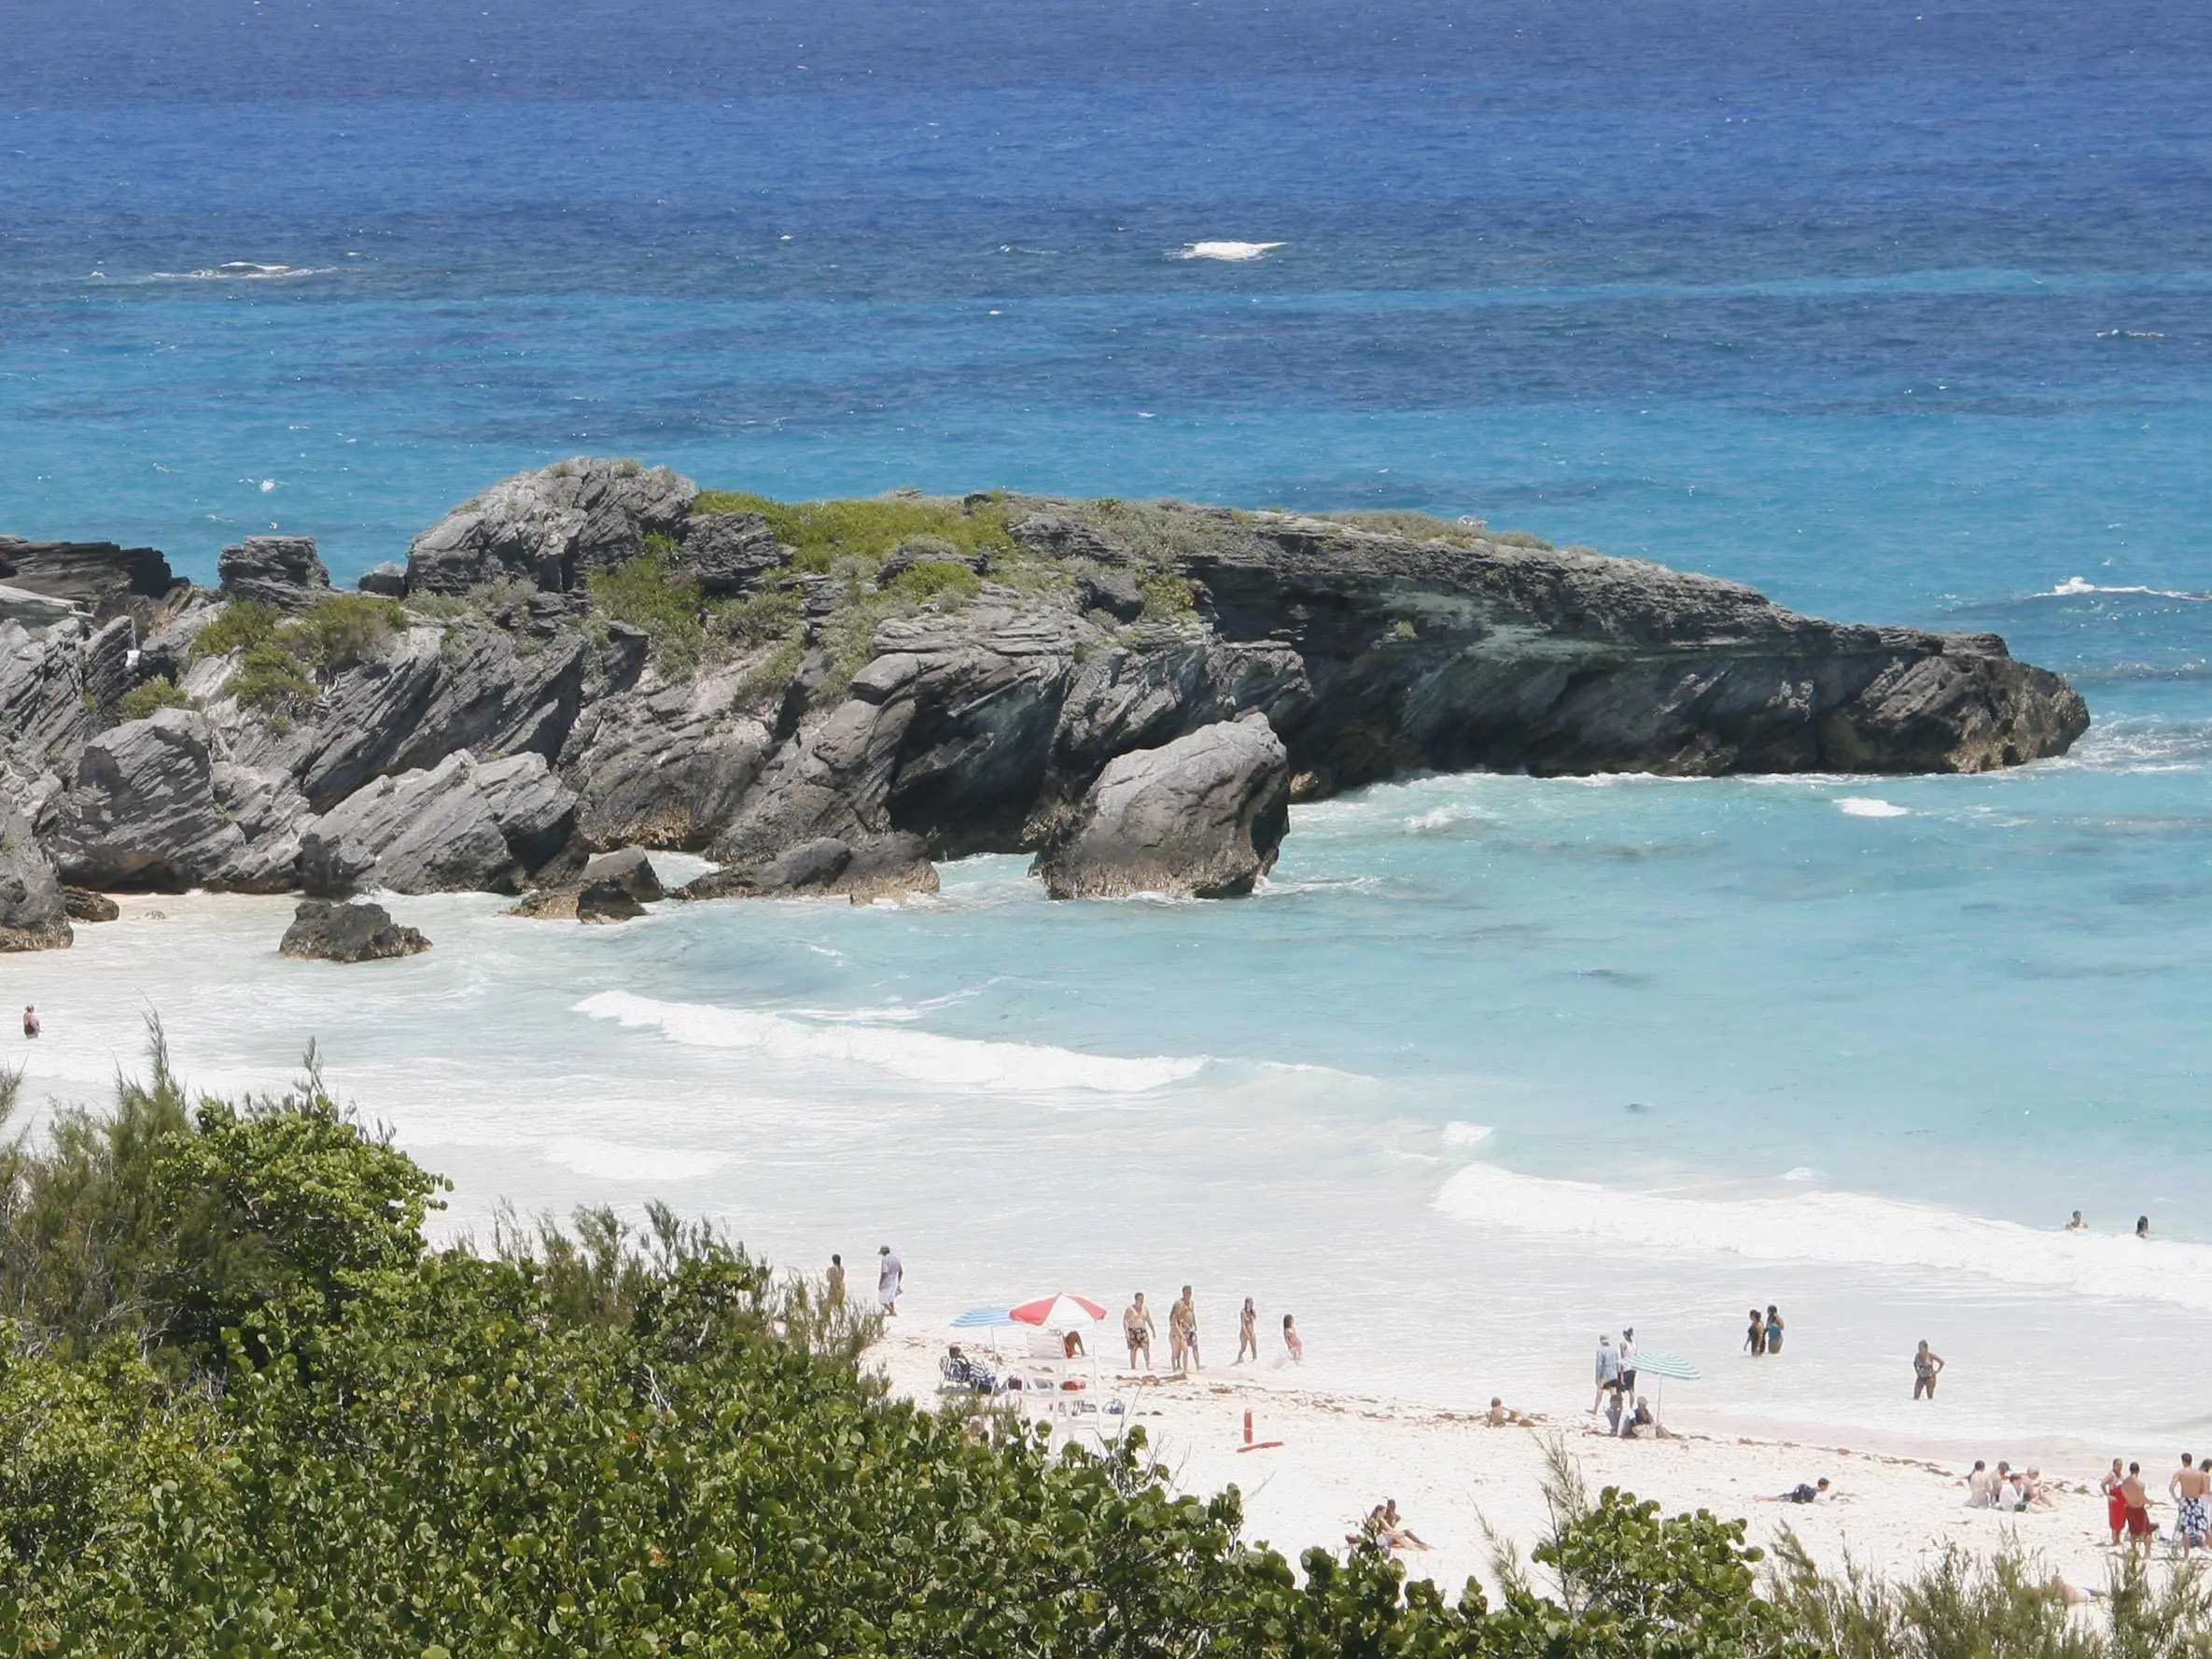 With its curved shoreline and pink sand, Horseshoe Bay is one of the most famous beaches in Bermuda.